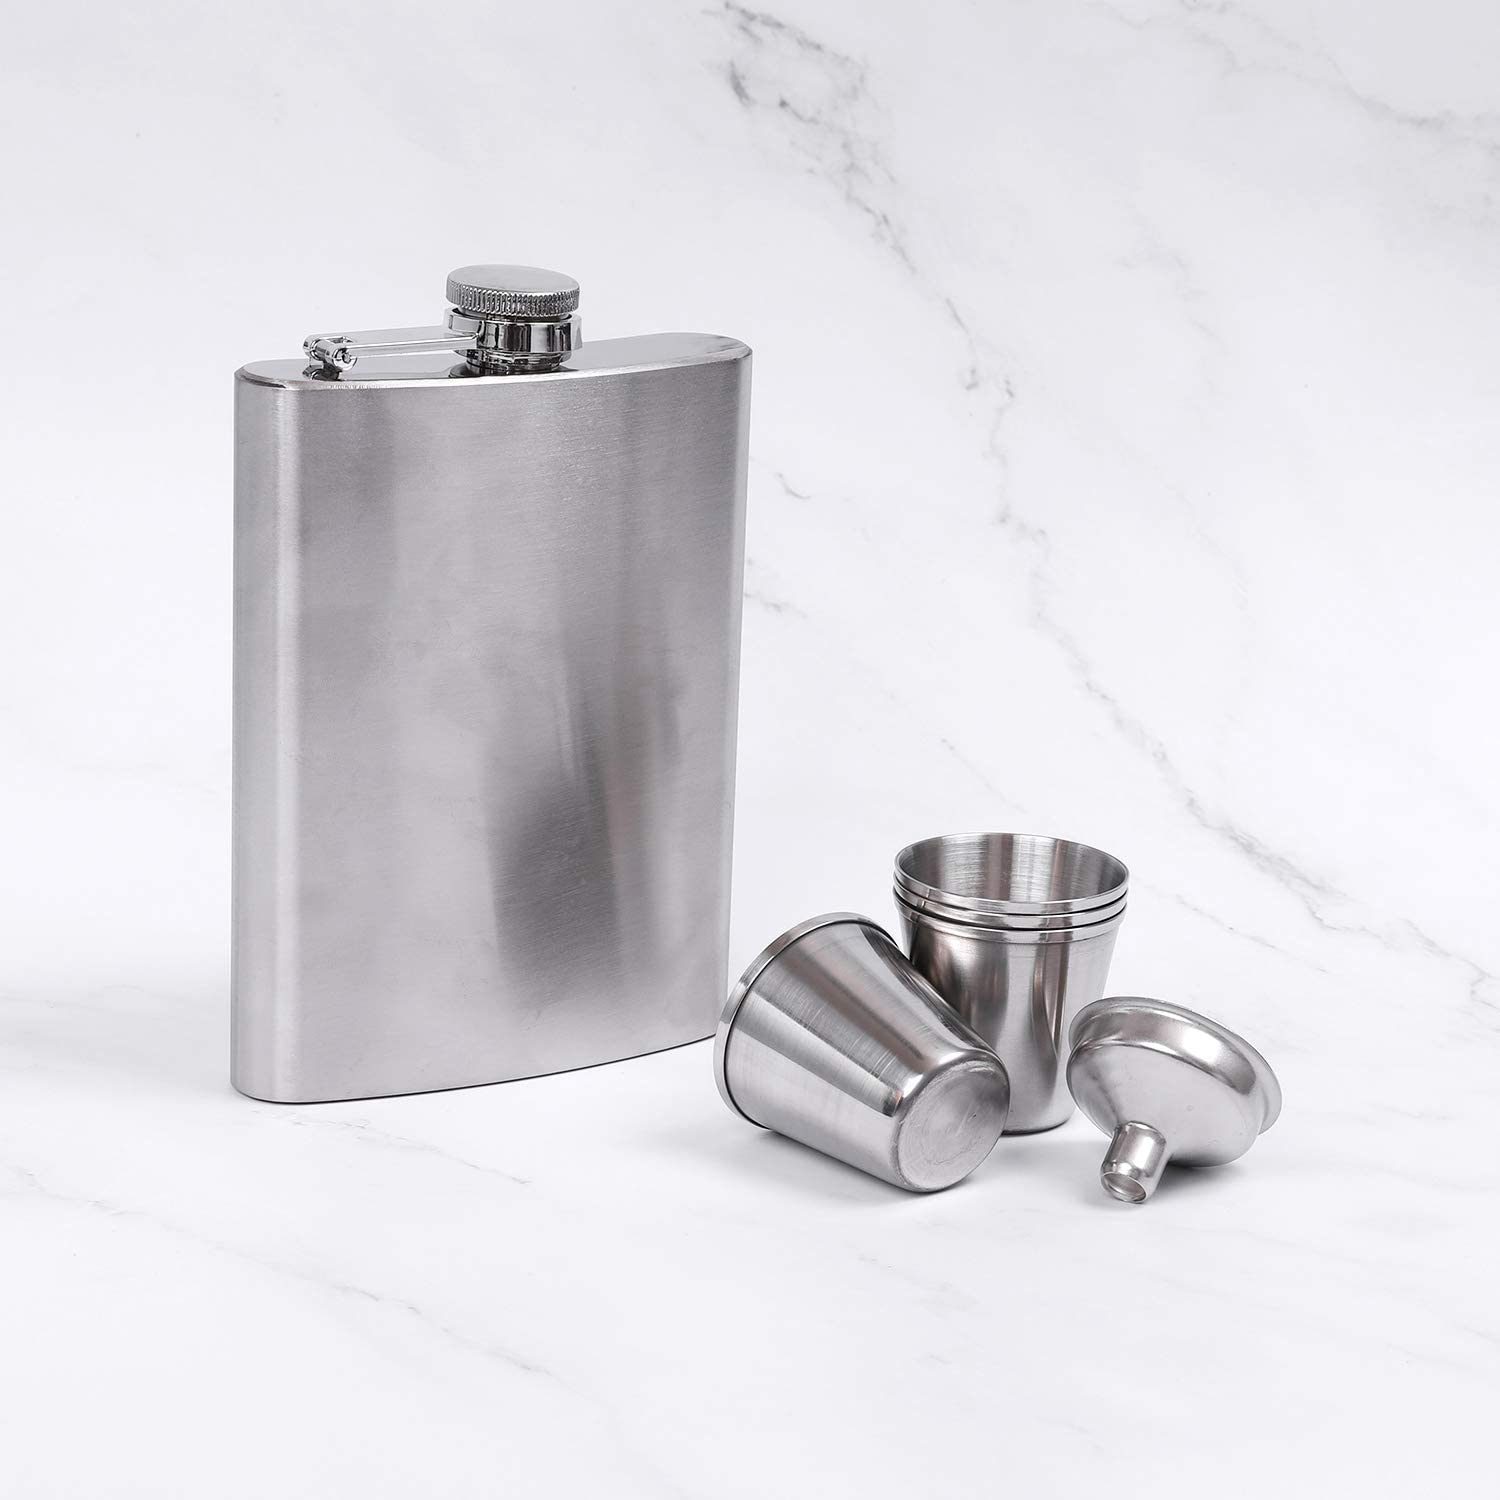 Elcoho 2 Pack 8 Ounce Hip Stainless Steel Flask Portable Pocket Hip Flask with 6 Pieces 1 Ounce Stainless Steel Shot Cups and 2 Pieces Handy Funnel Totally 10 Pieces